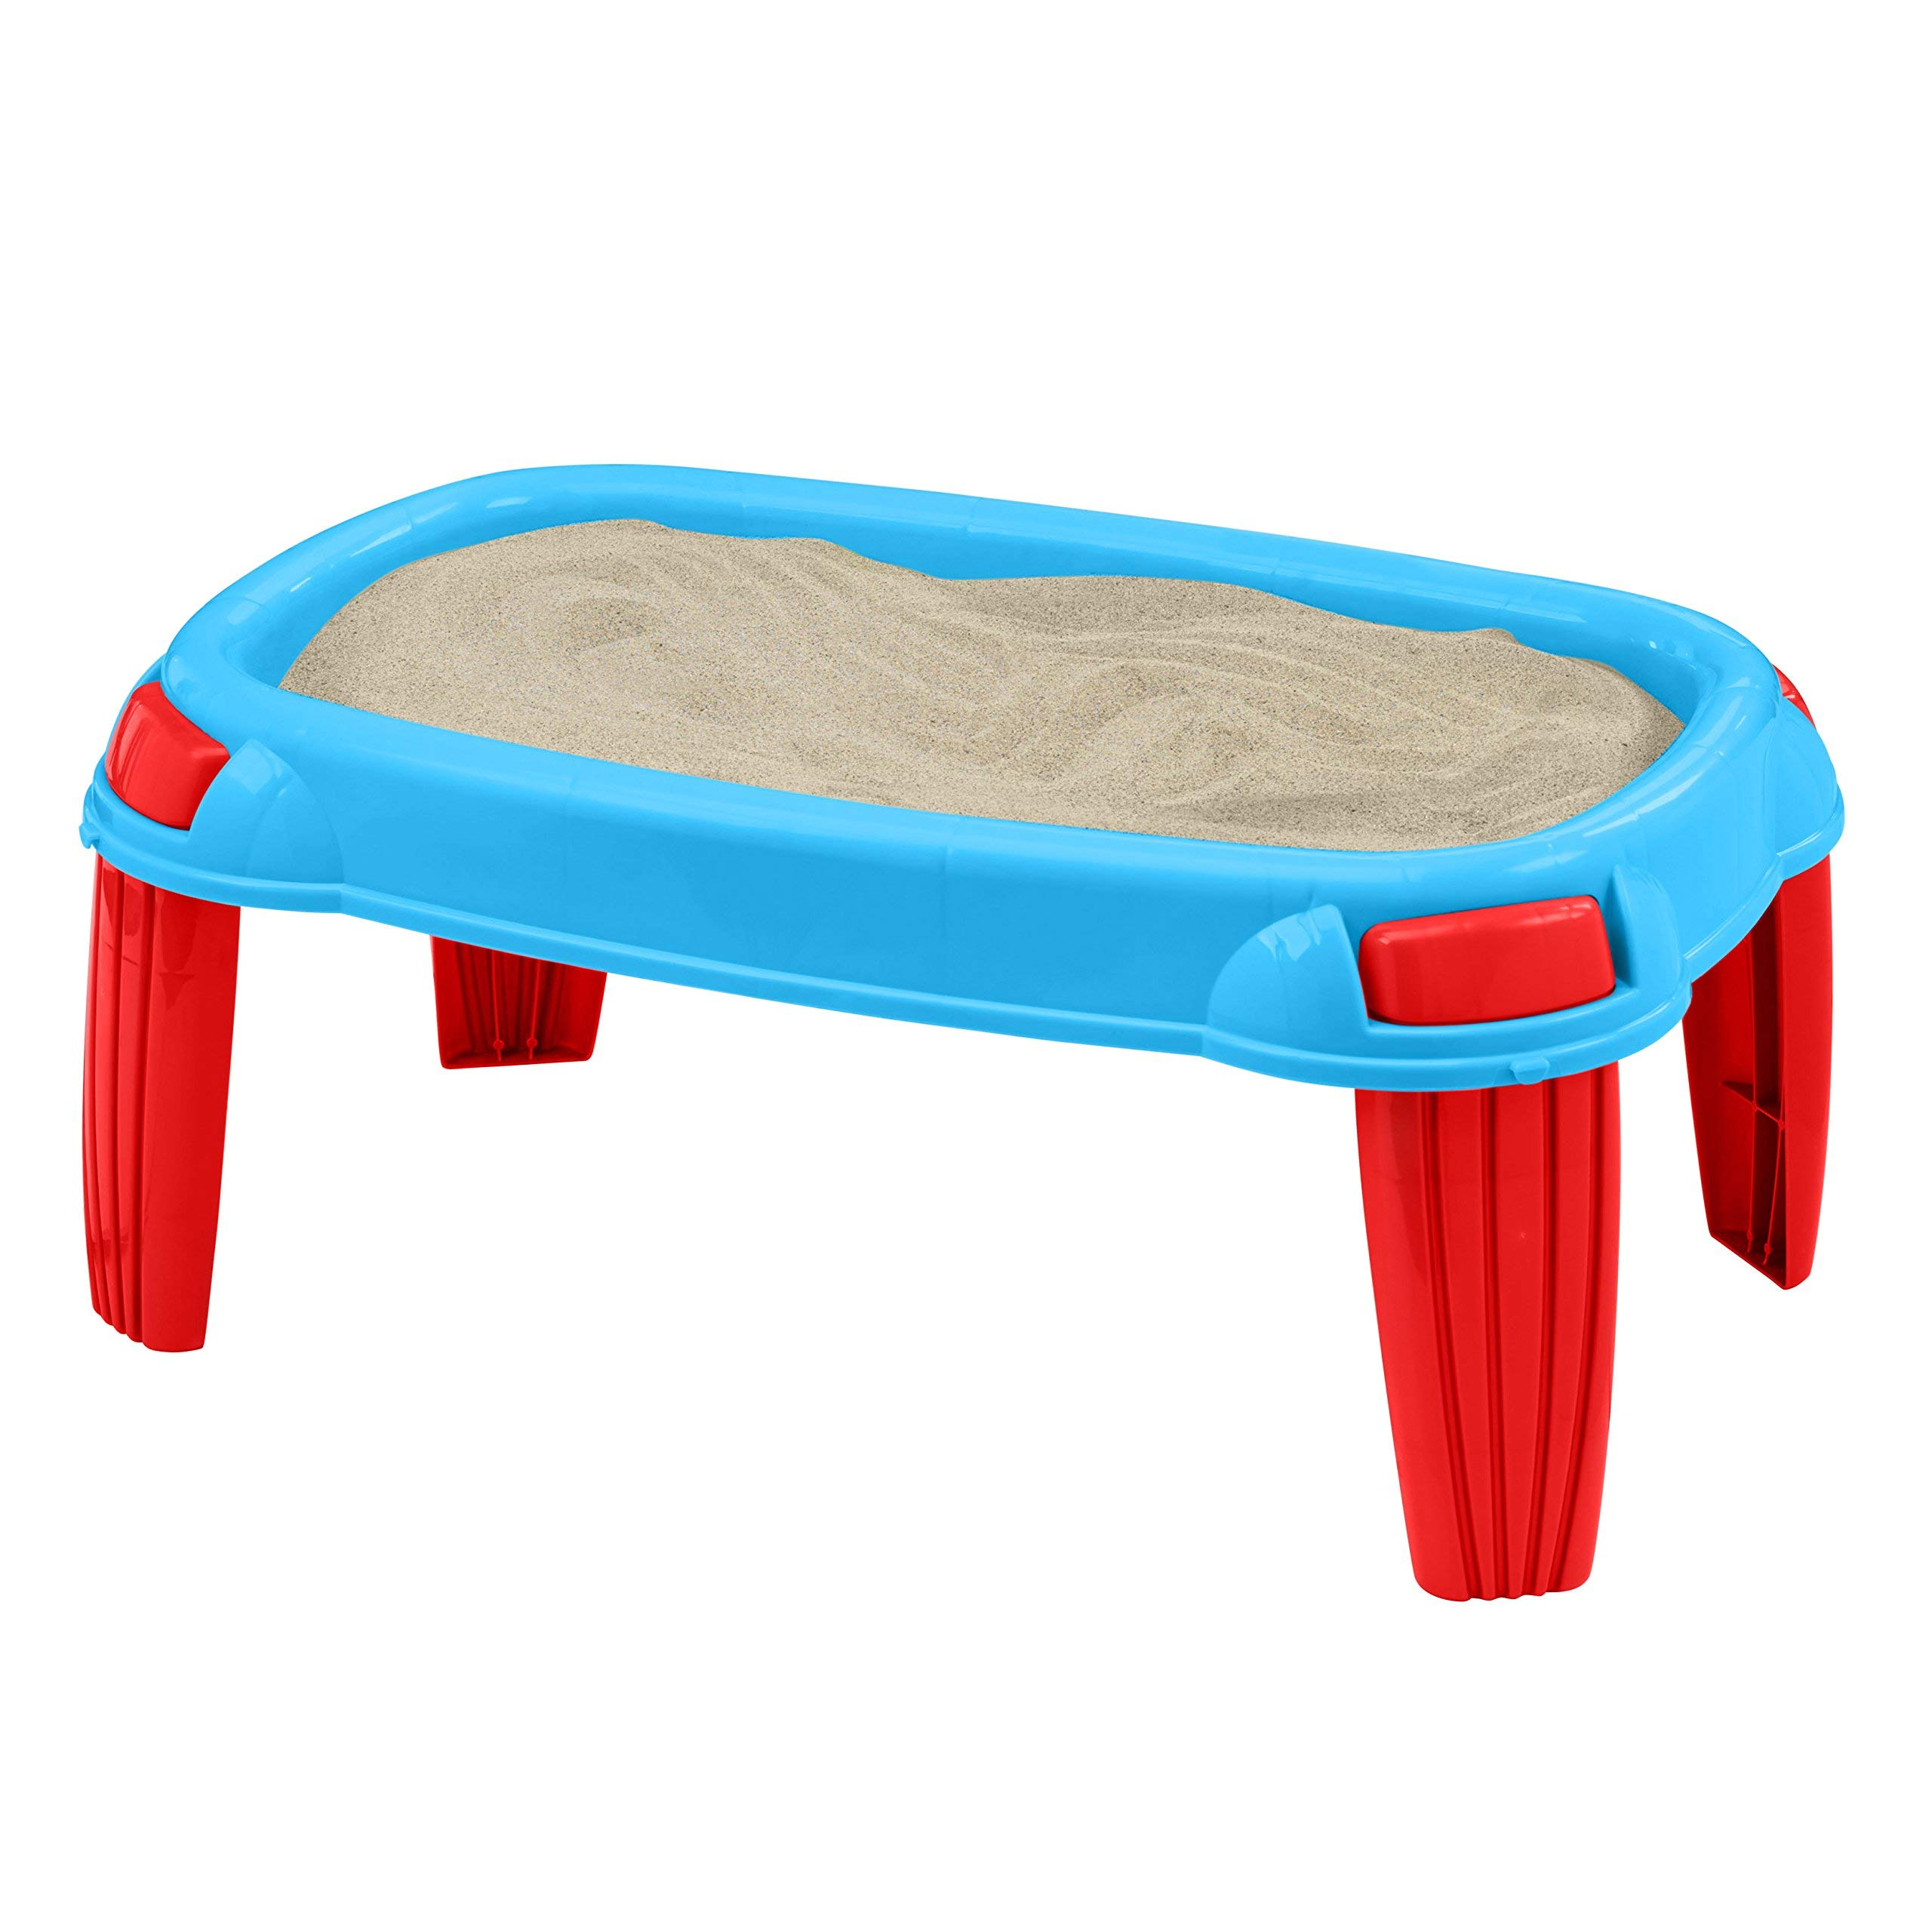 American Plastic Toys Kids Outdoor Sand Table (Renewed) by American Plastic Toys